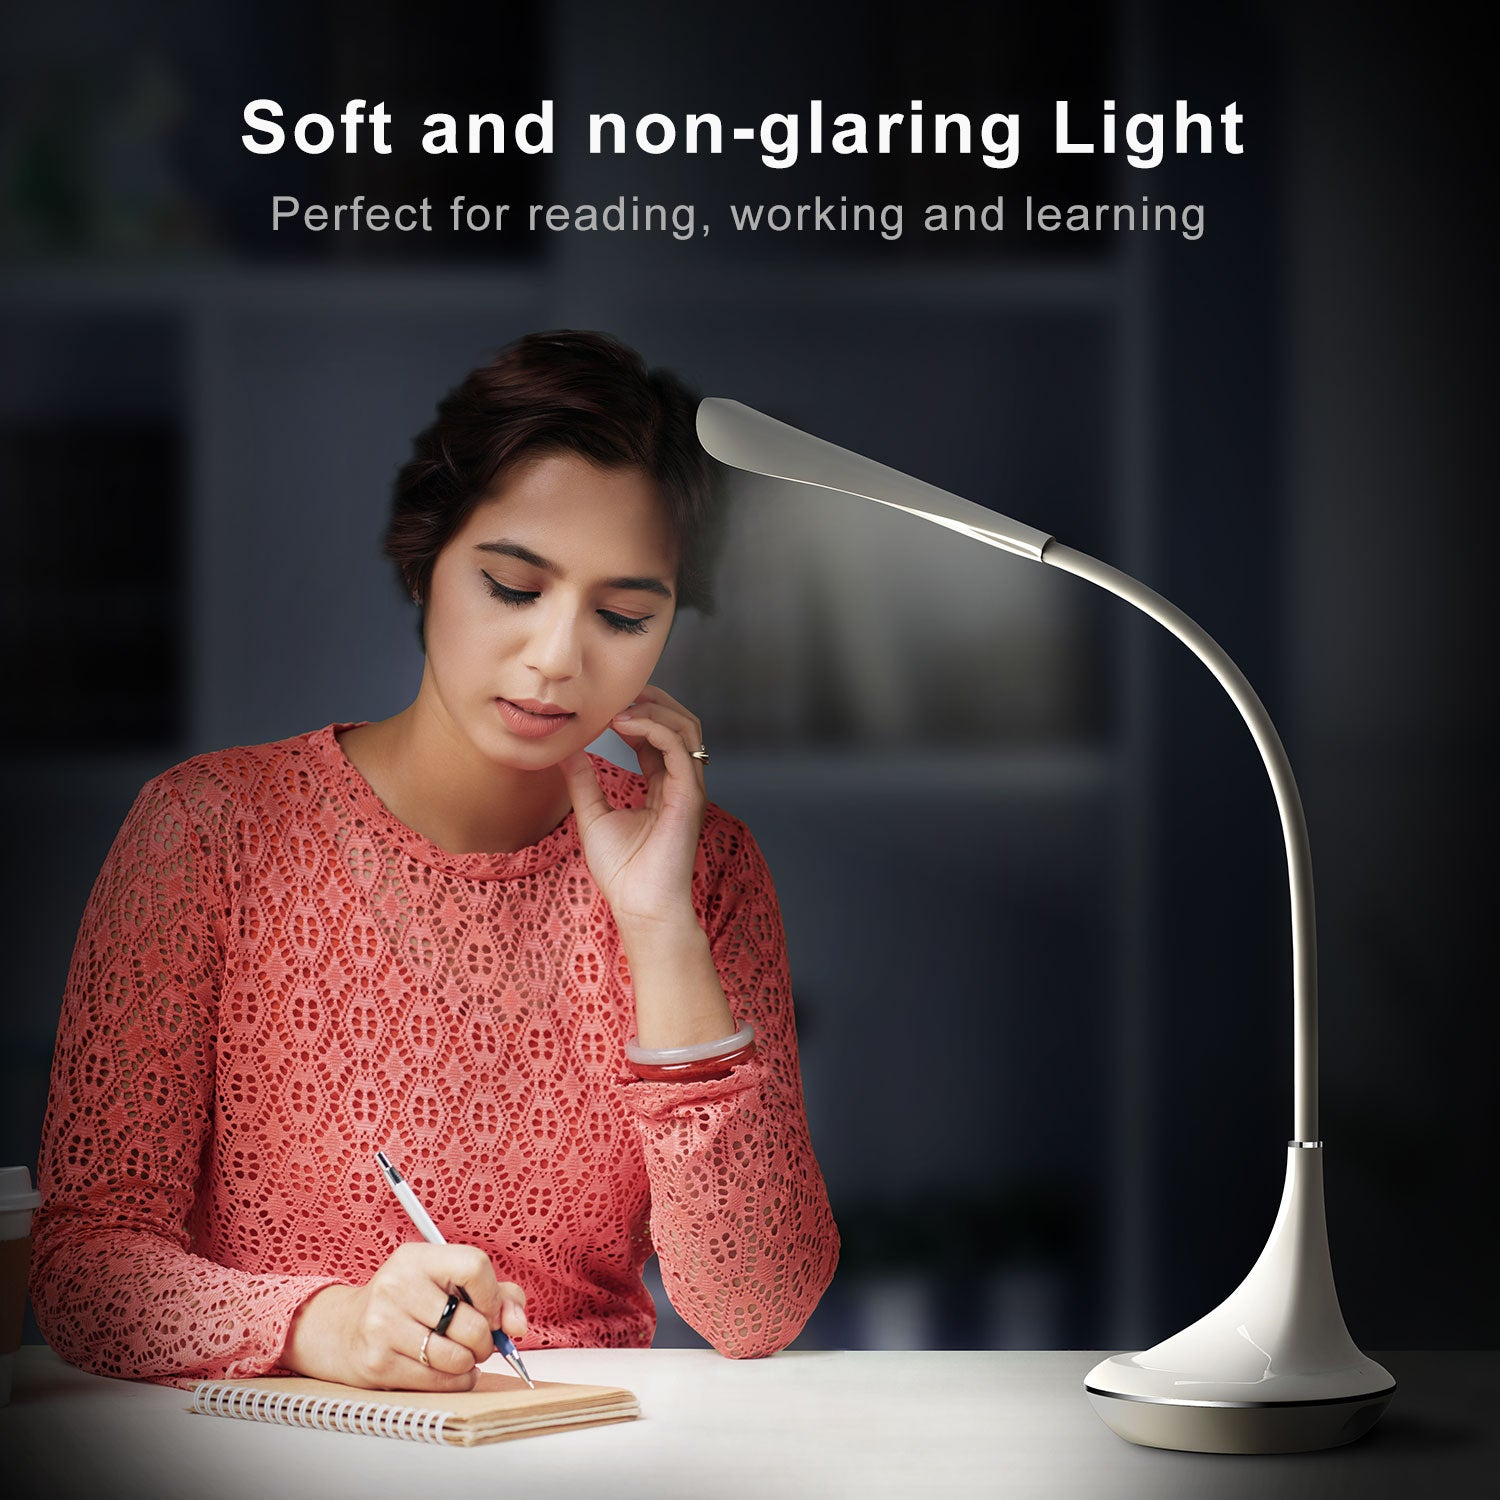 VOXON 4W LED Desk Lamp Stepless Brightness for Home Office Study